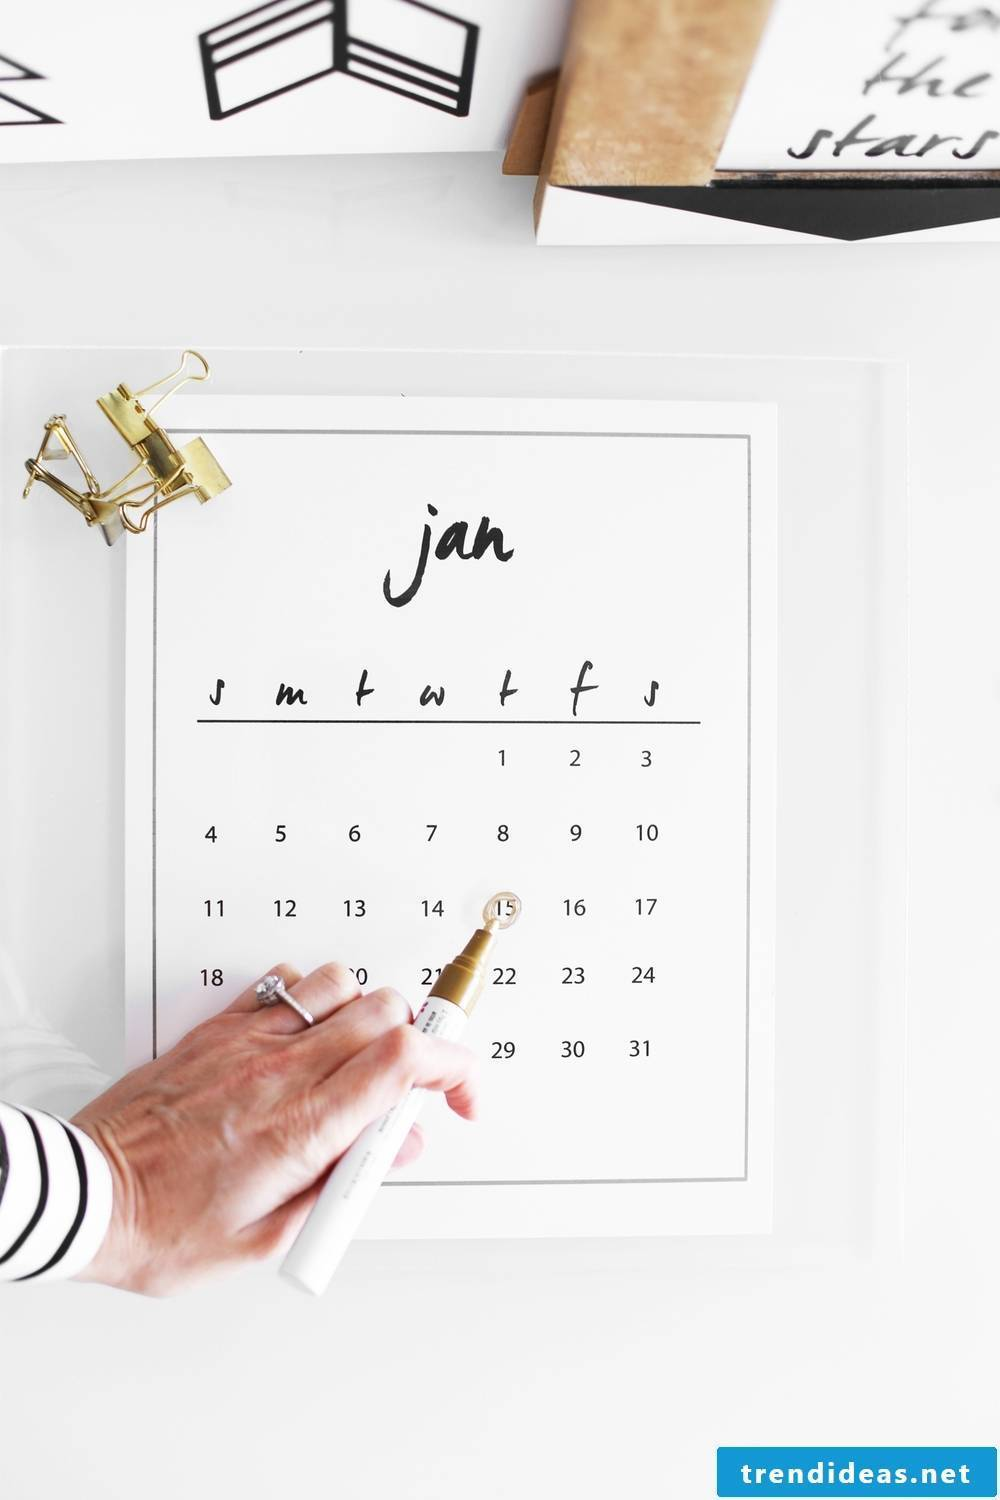 Read our guide for making photo calendars yourself